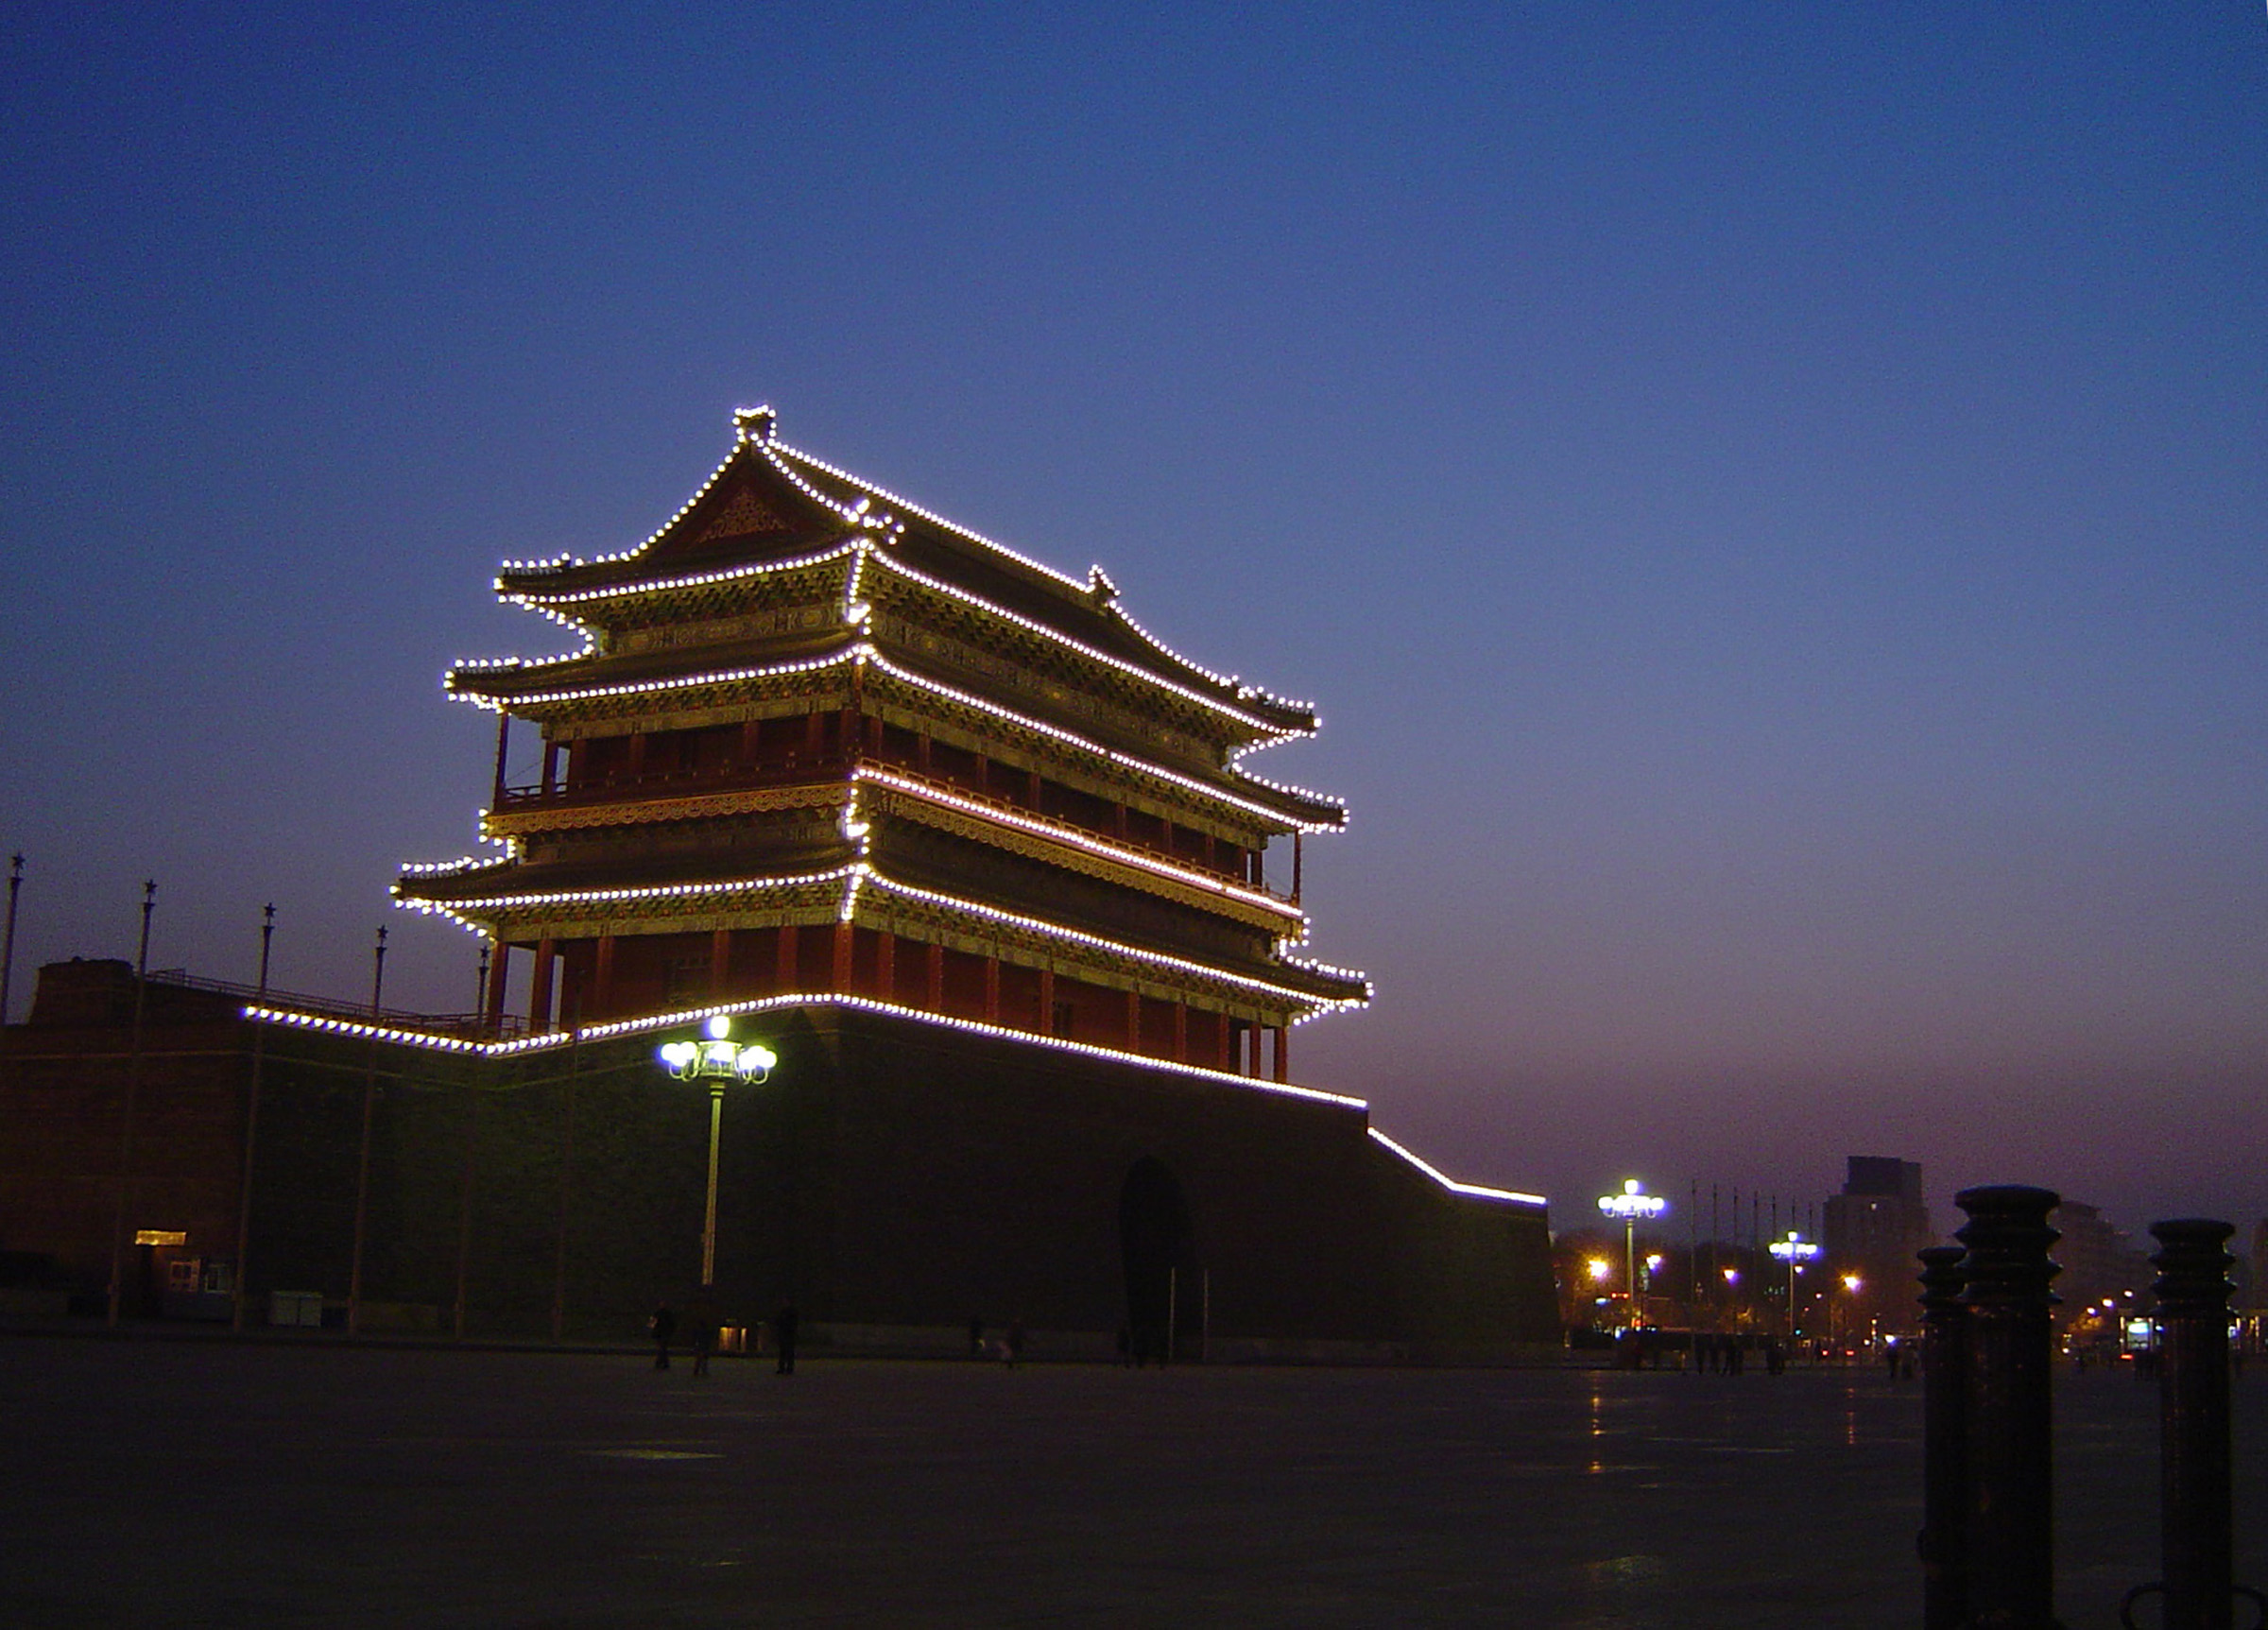 Famous Attraction of Vintage Architectural Forbidden City Palace in Beijing China at Night Time.